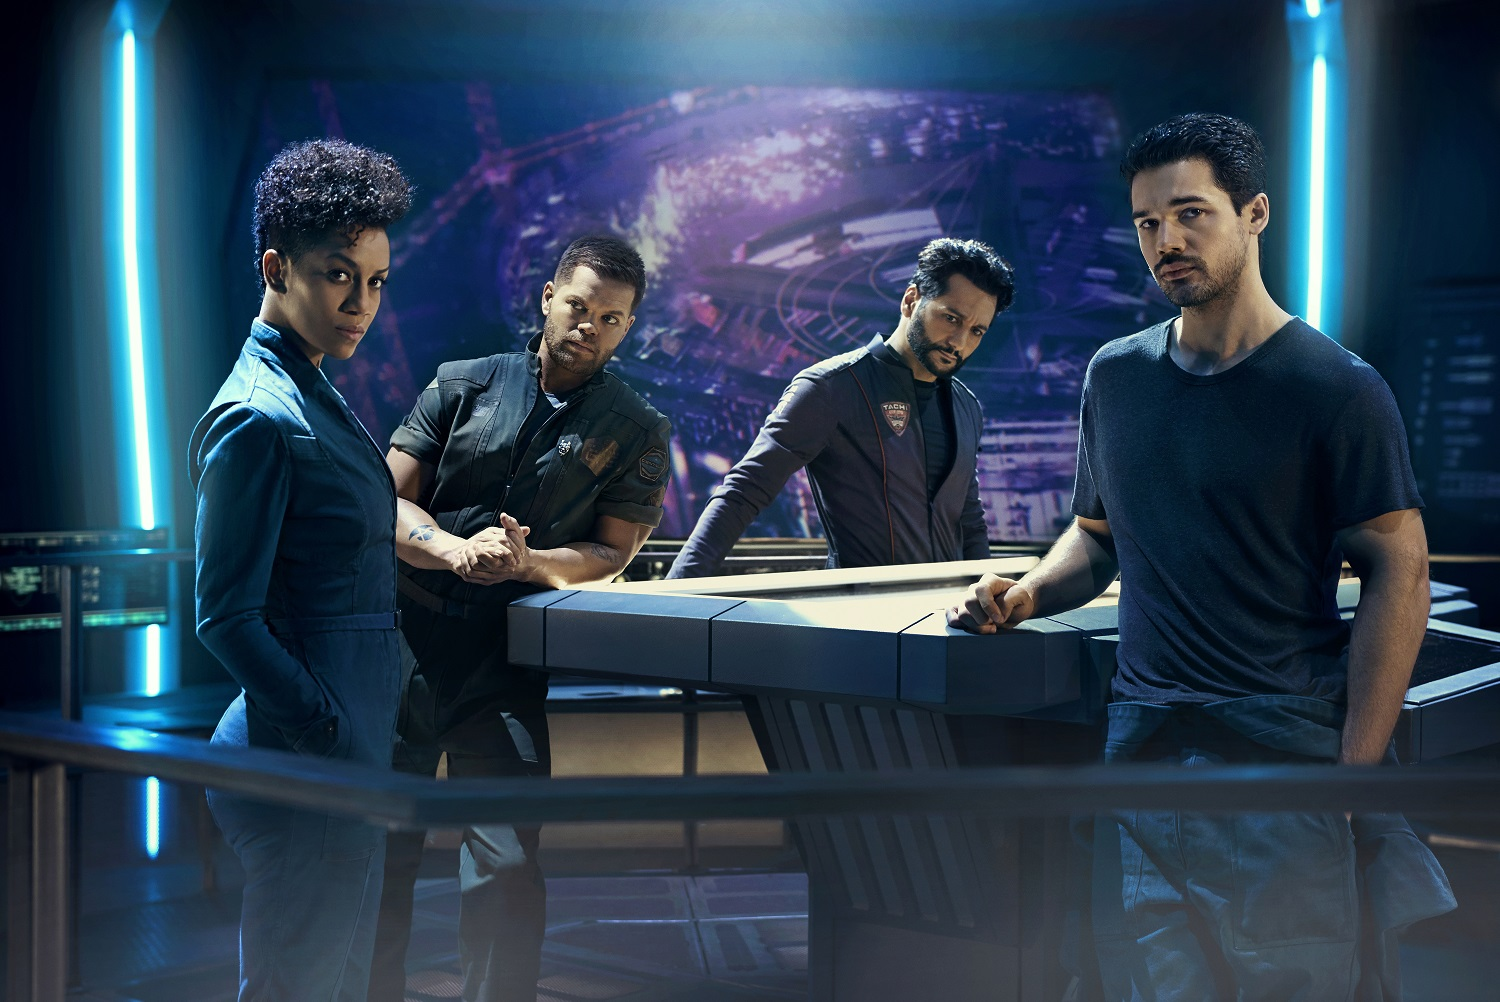 Dominique Tipper as Naomi Nagata, Wes Chatham as Amos Burton, Cas Anvar as Alex Kamal, and Steven Strait as James Holden of The Expanse